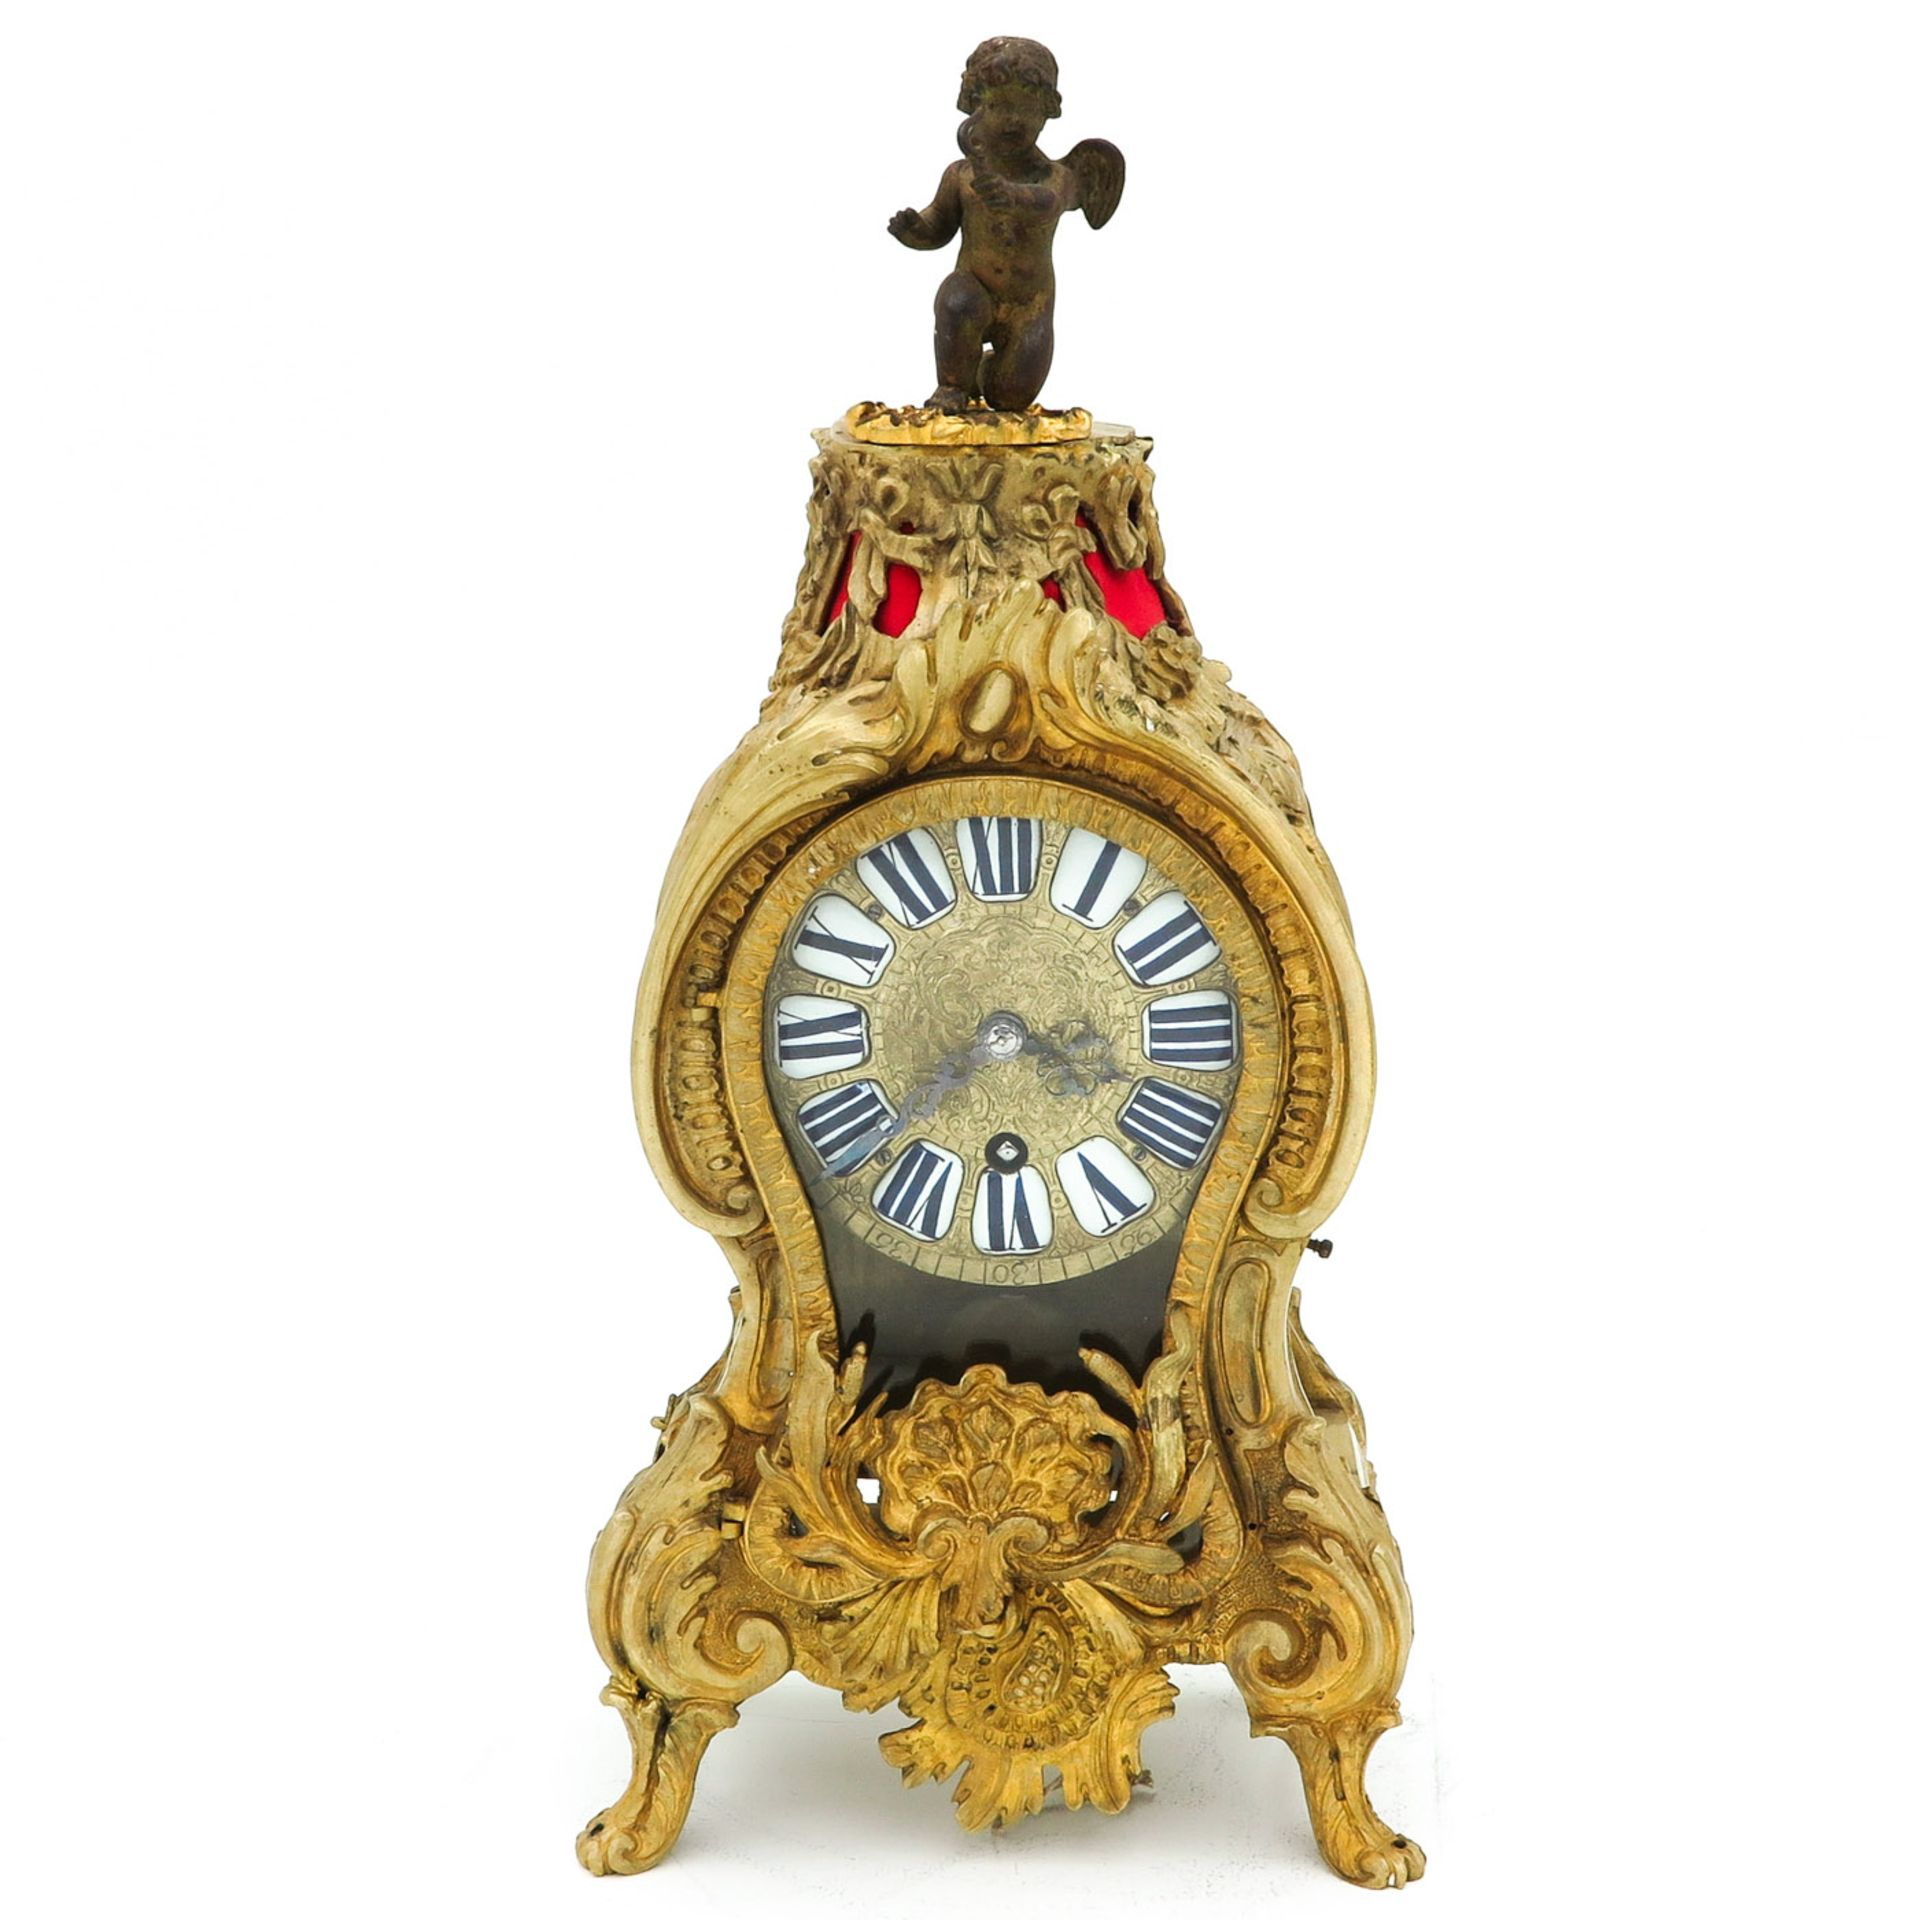 Los 1165 - An 18th Century Signed French Pendulum